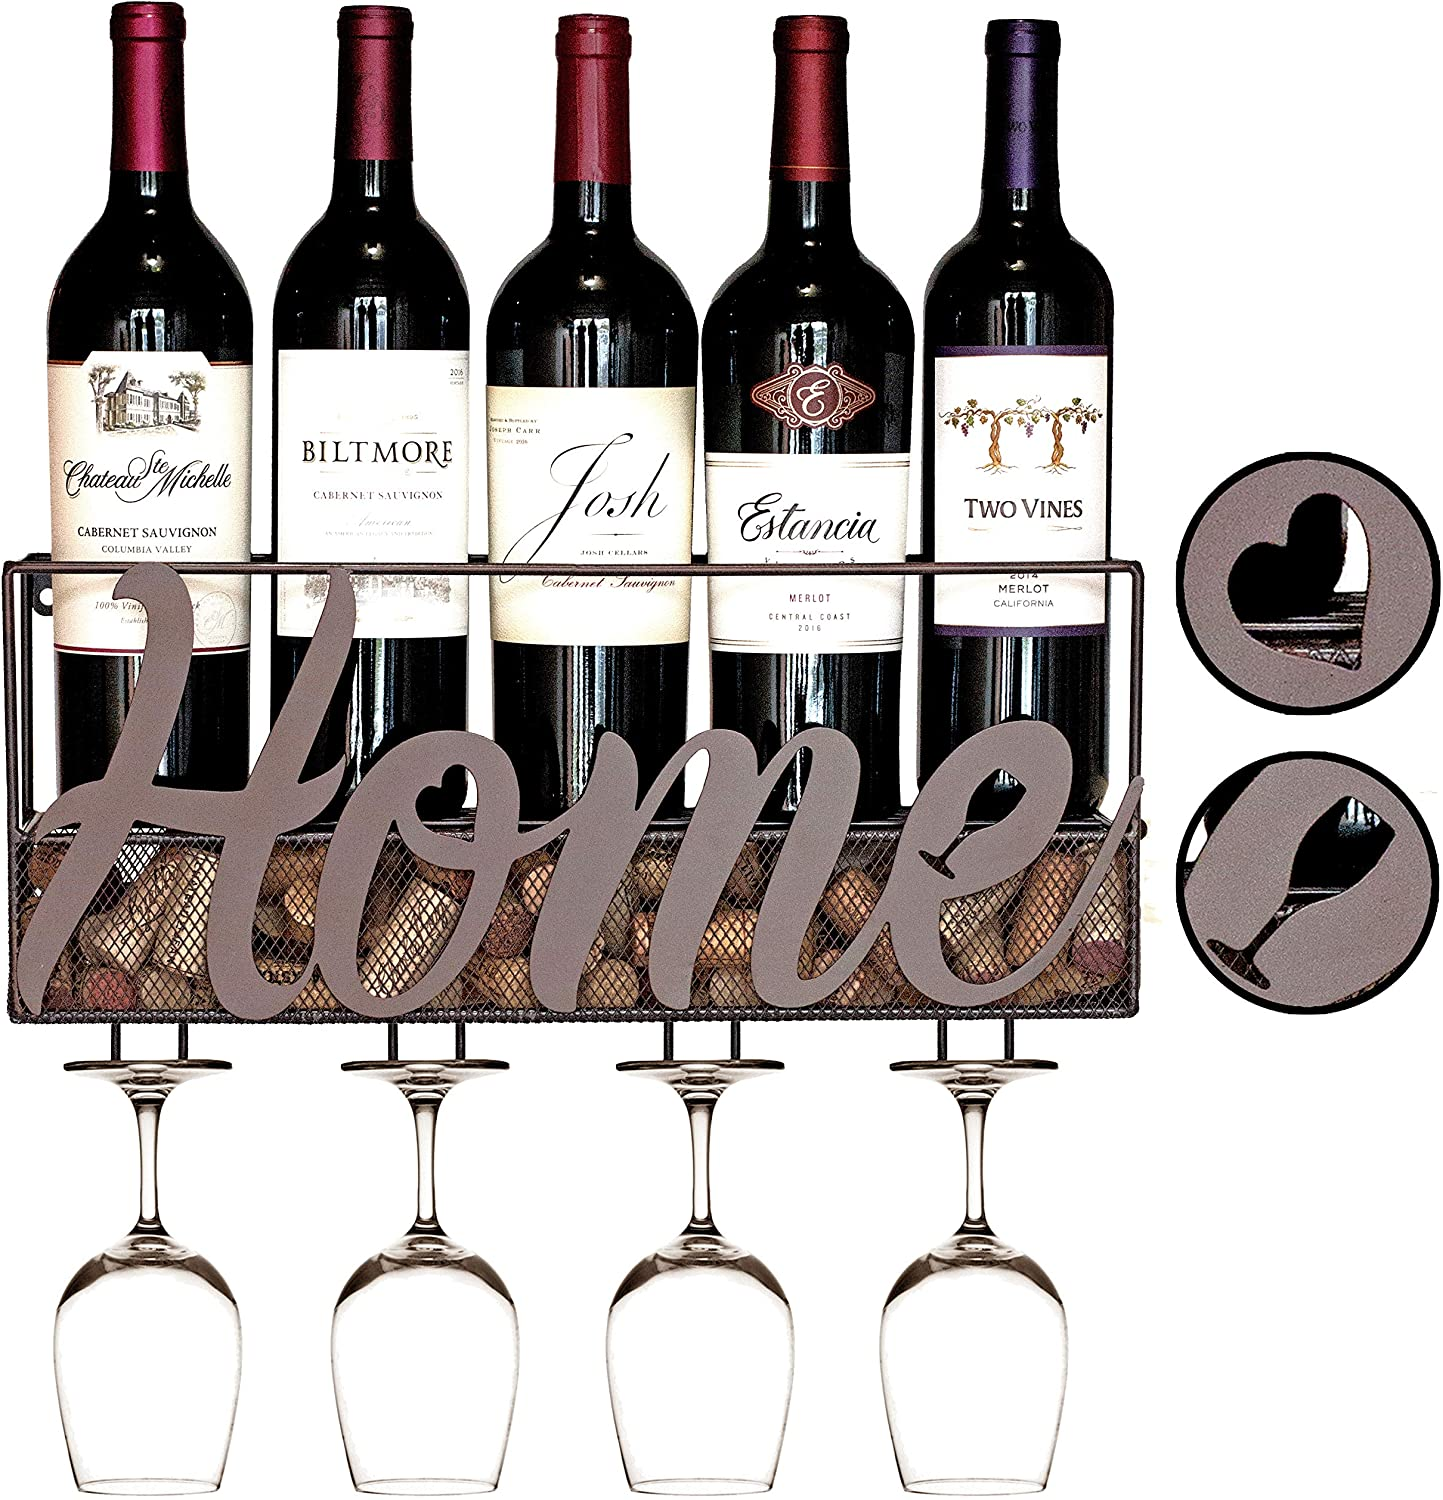 Best Wall Mount Wine Rack Holds 5 Bottles and 4 Glasses - HOME